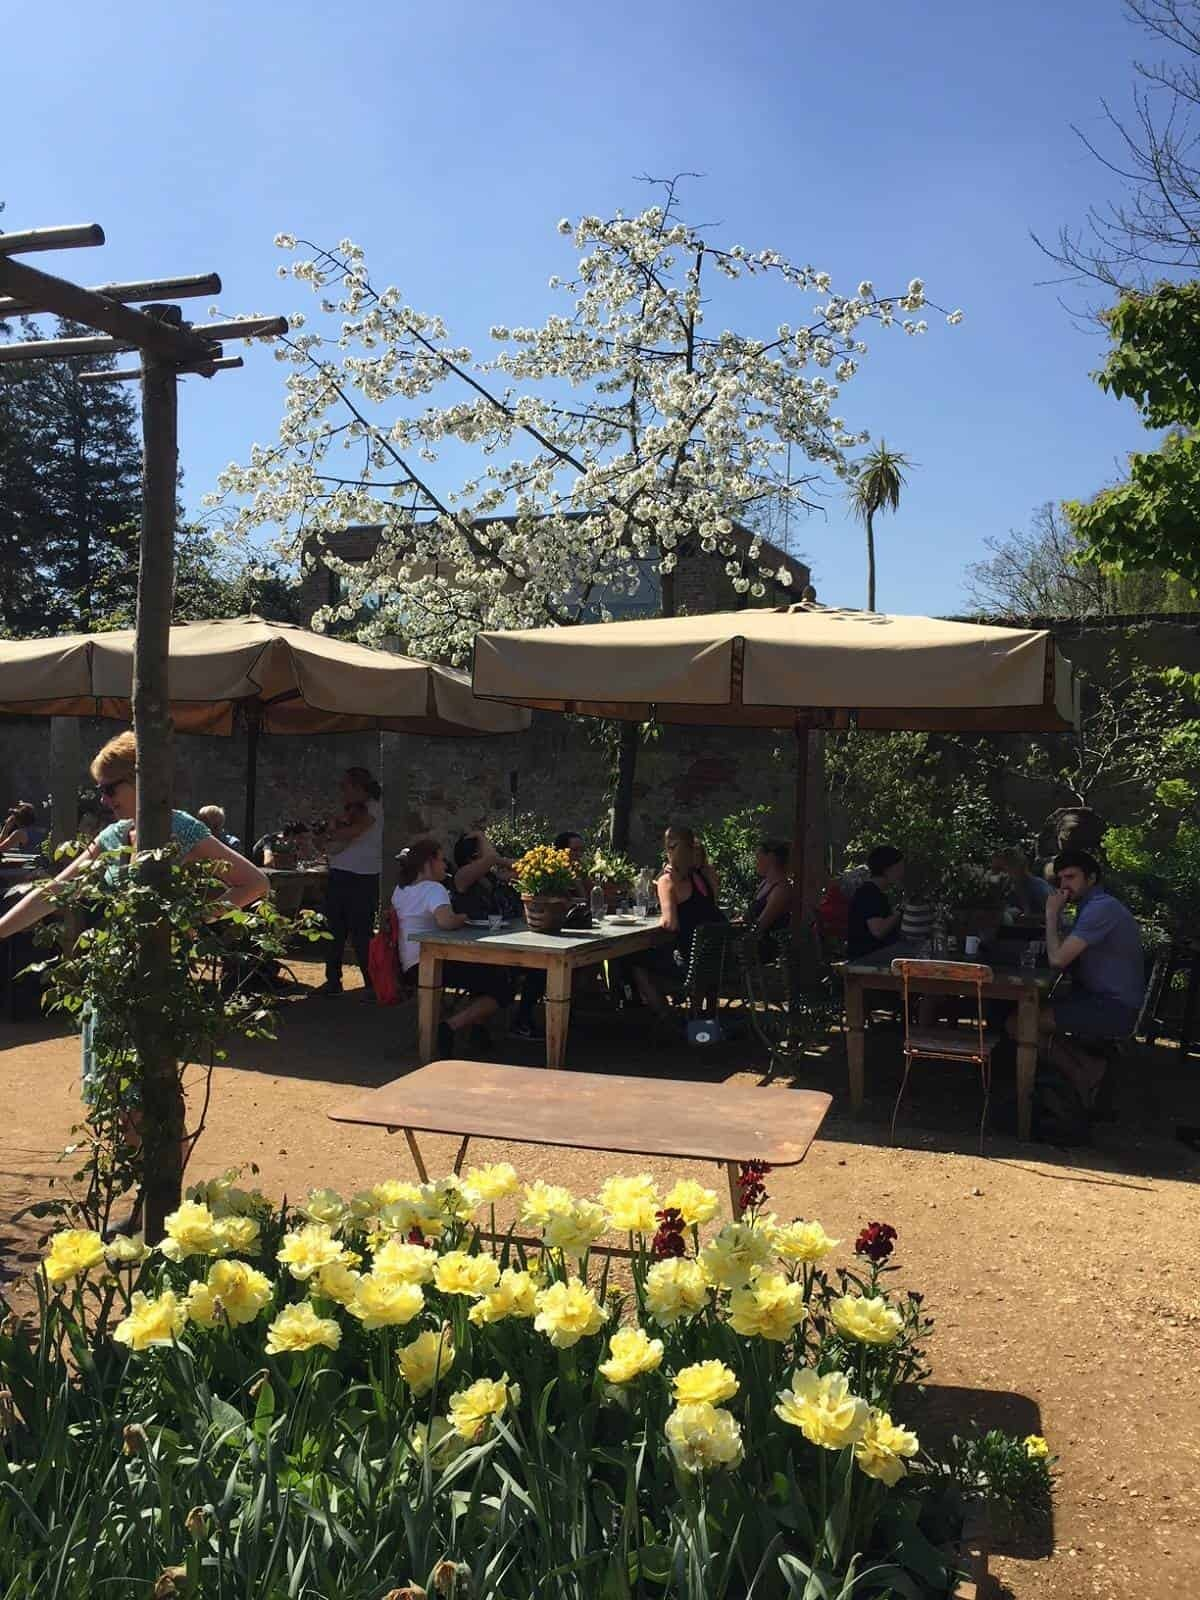 The Teahouse at Petersham Nurseries in Richmond